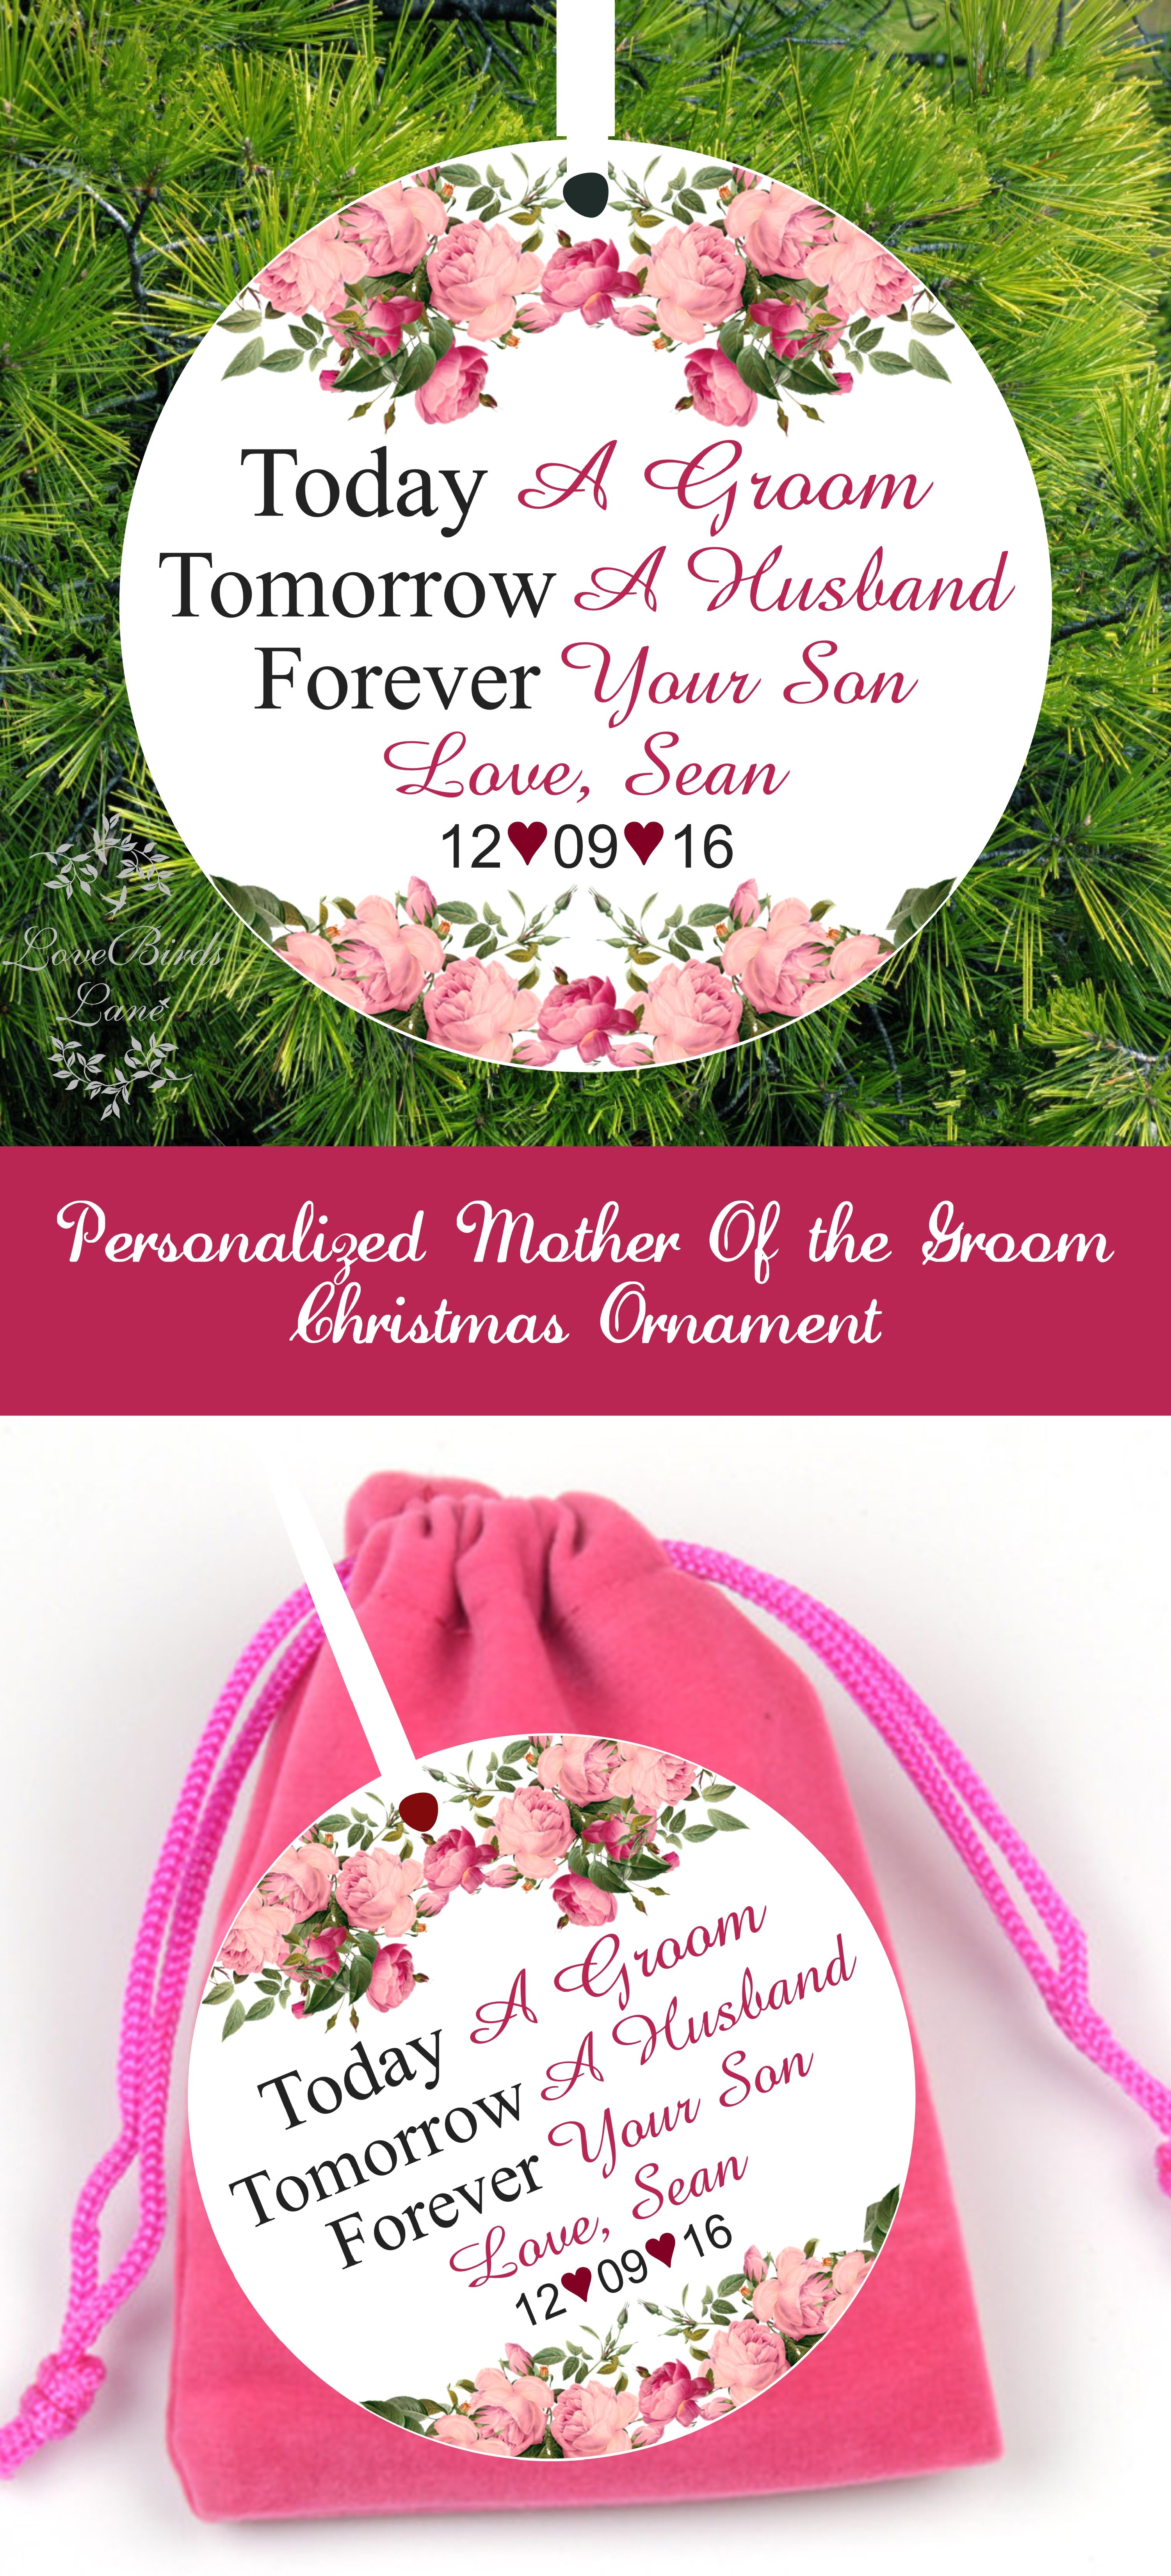 Today Tomorrow Forever Your Son Pink Floral Christmas Ornament ...